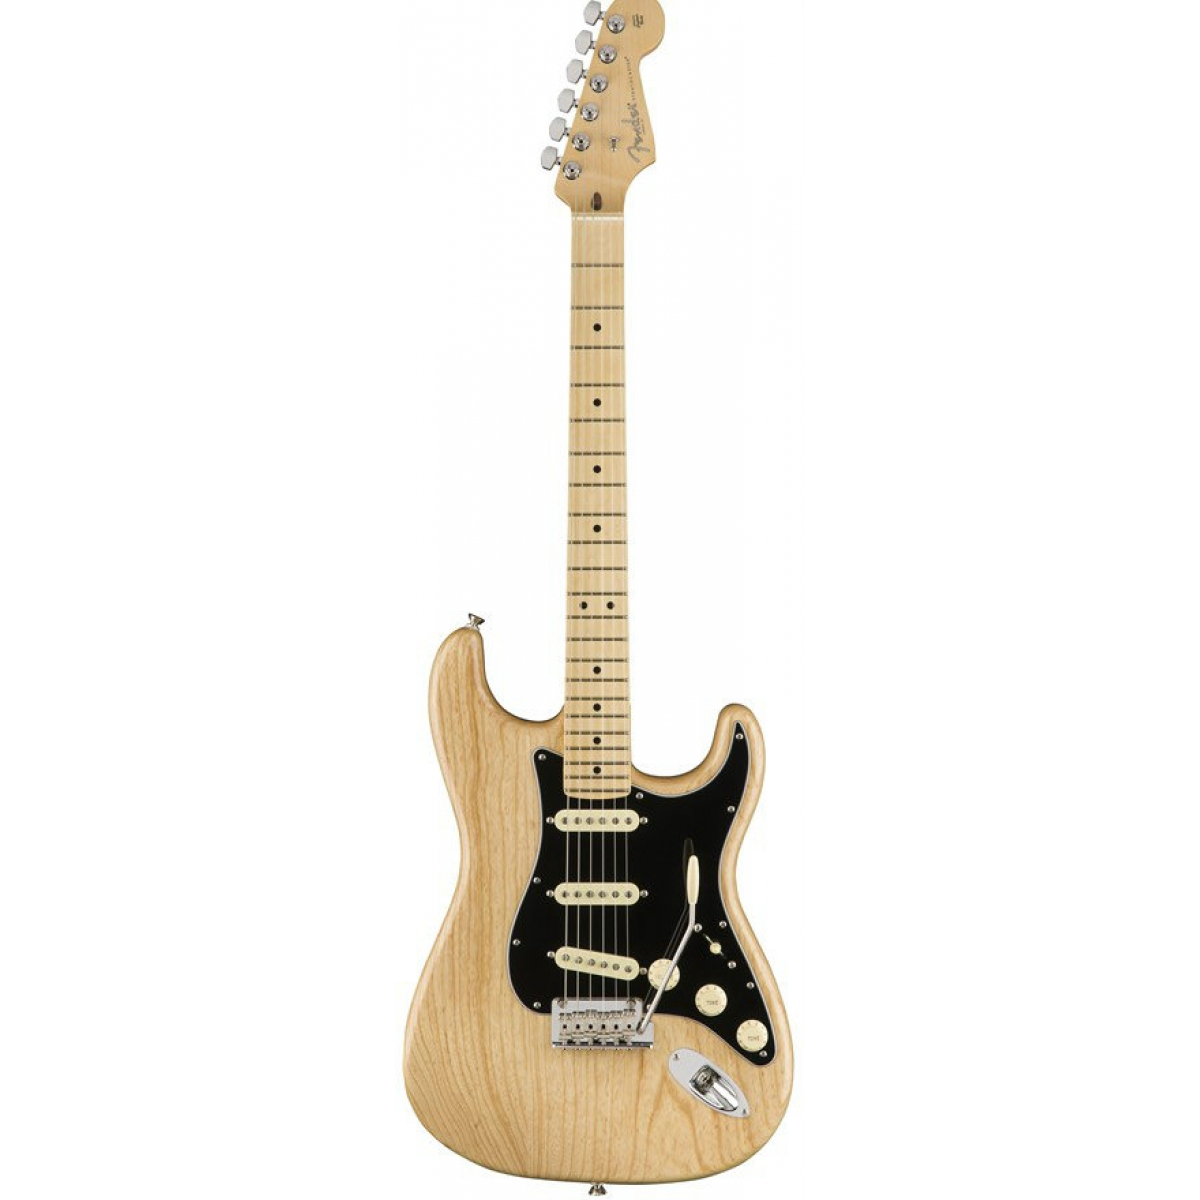 fender american made professional stratocaster in natural at promenade music. Black Bedroom Furniture Sets. Home Design Ideas